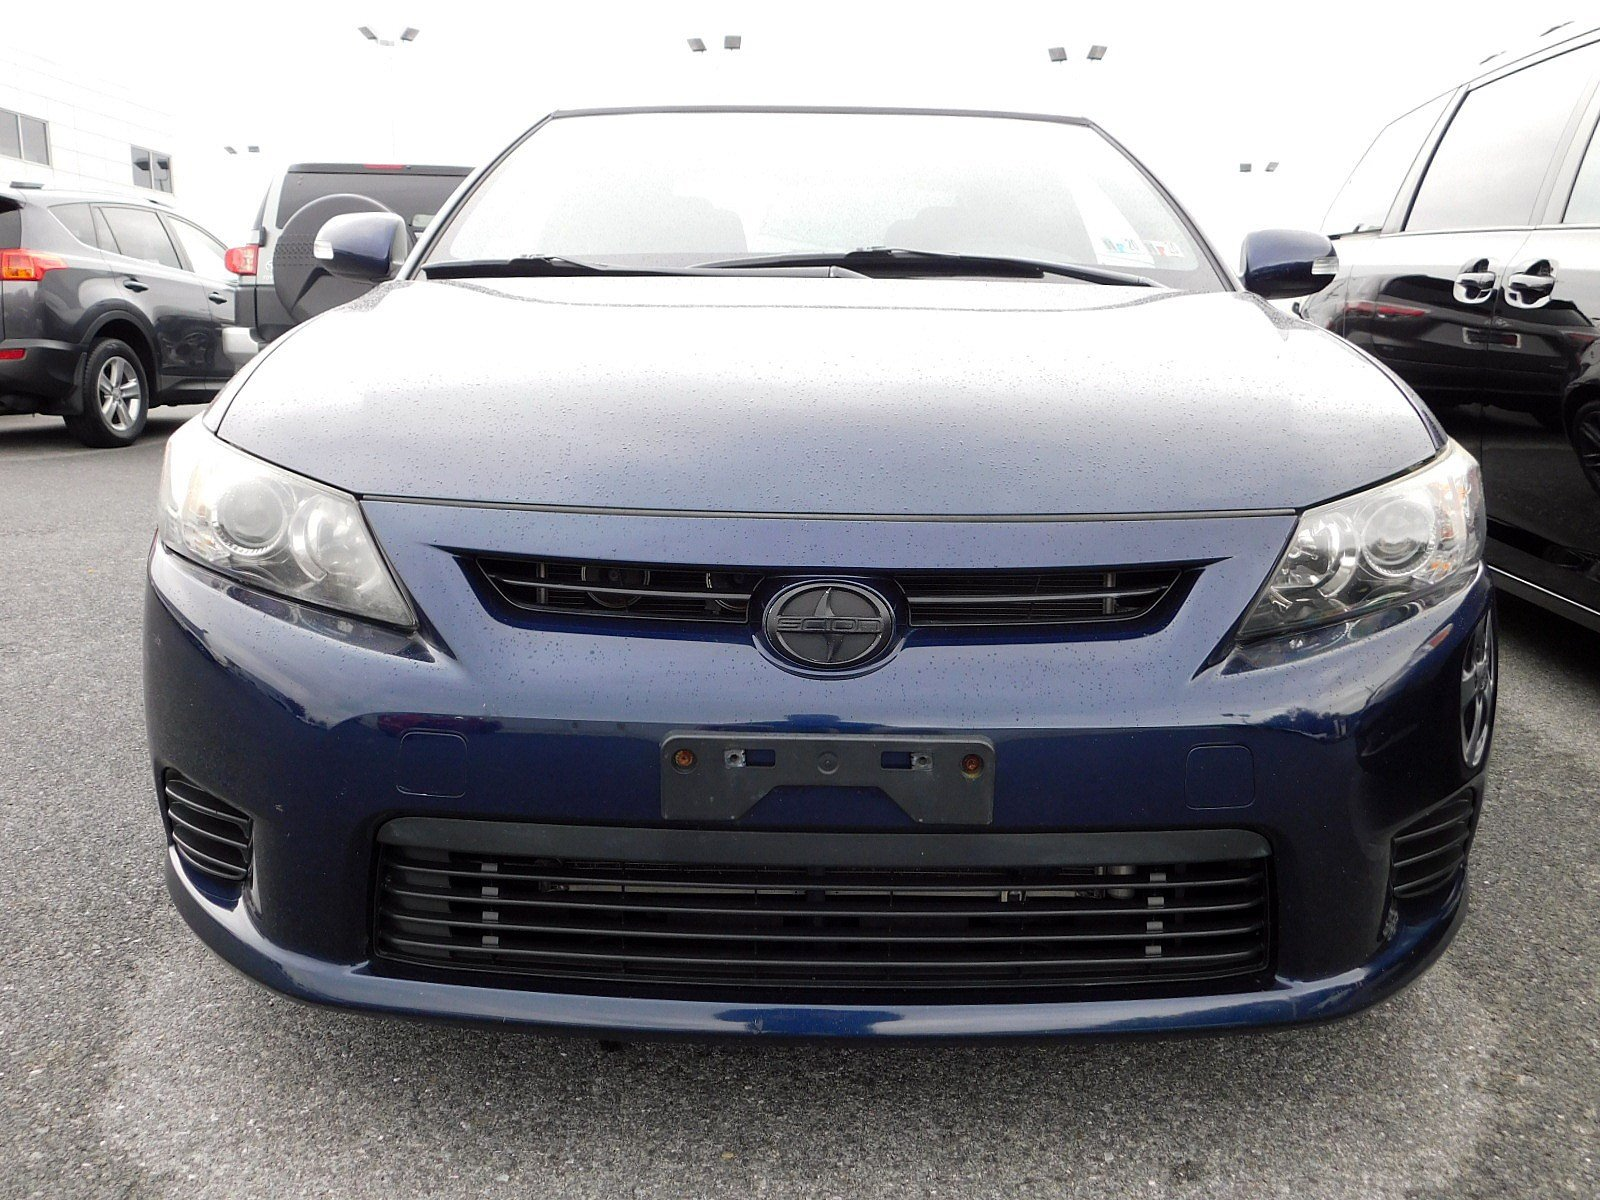 Pre-Owned 2012 Scion tC 2DR HB AT